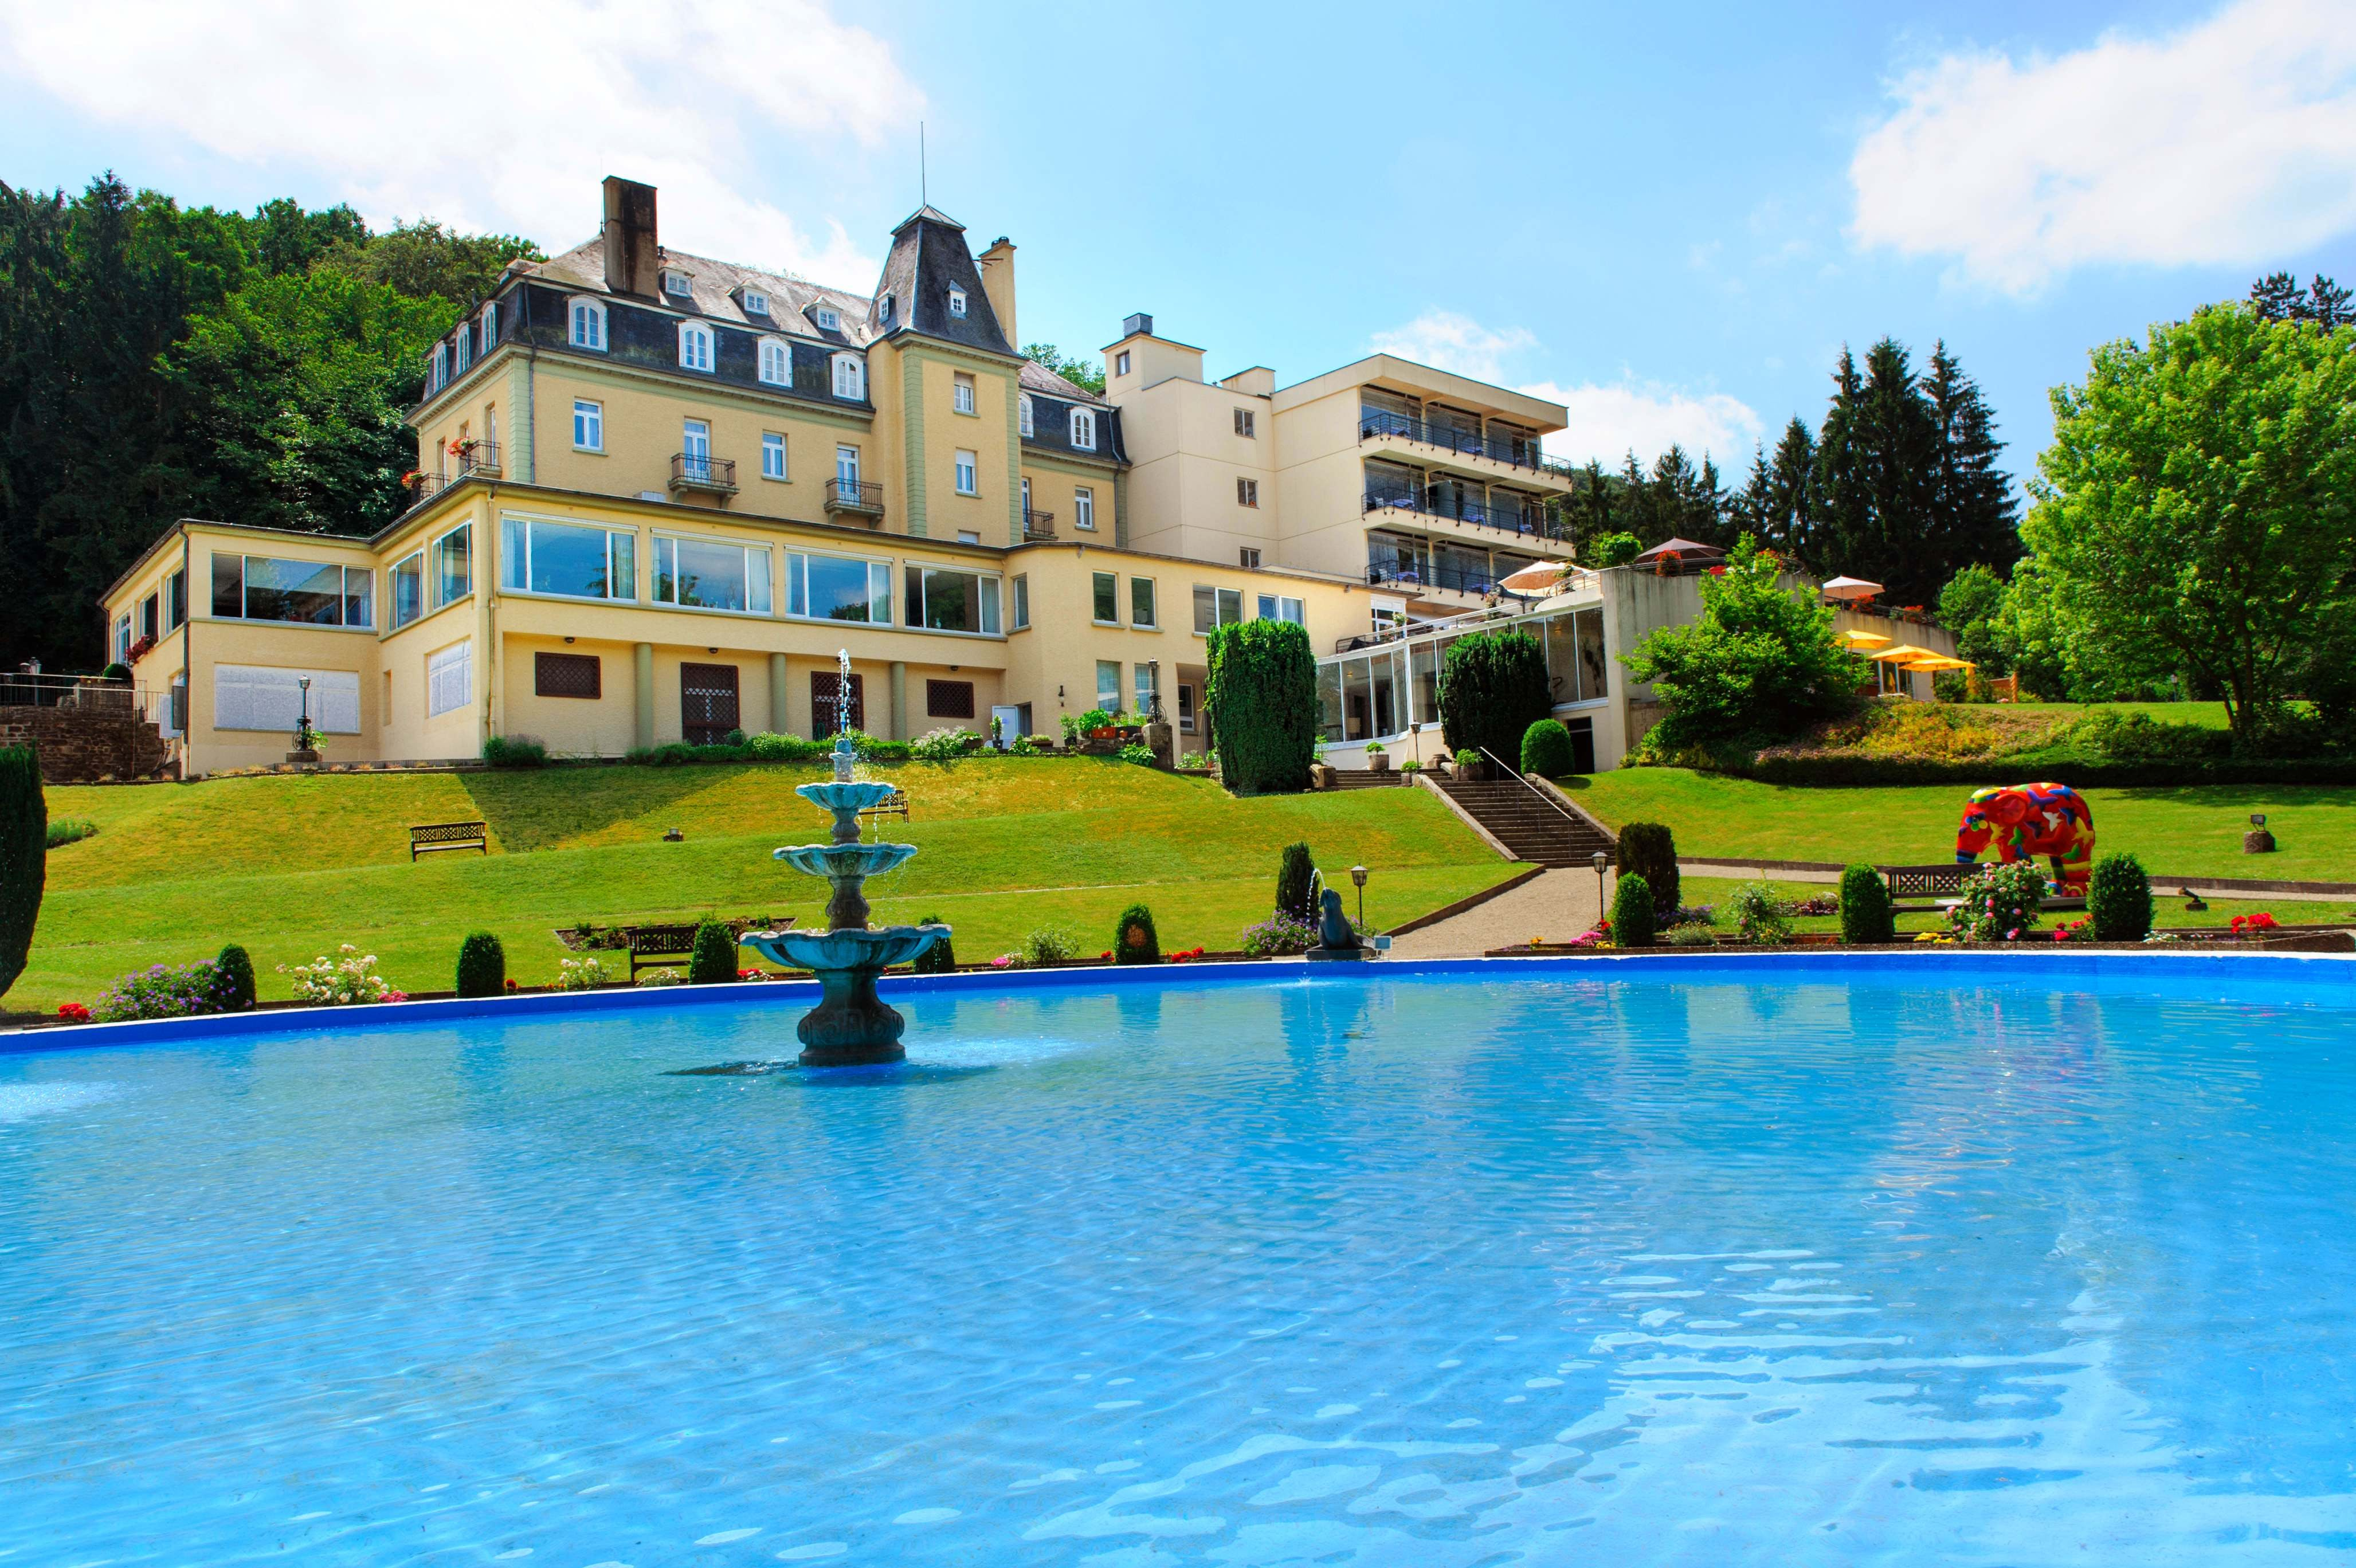 Hotel Bel-Air Romantik, Mullerthal, Luxembourg